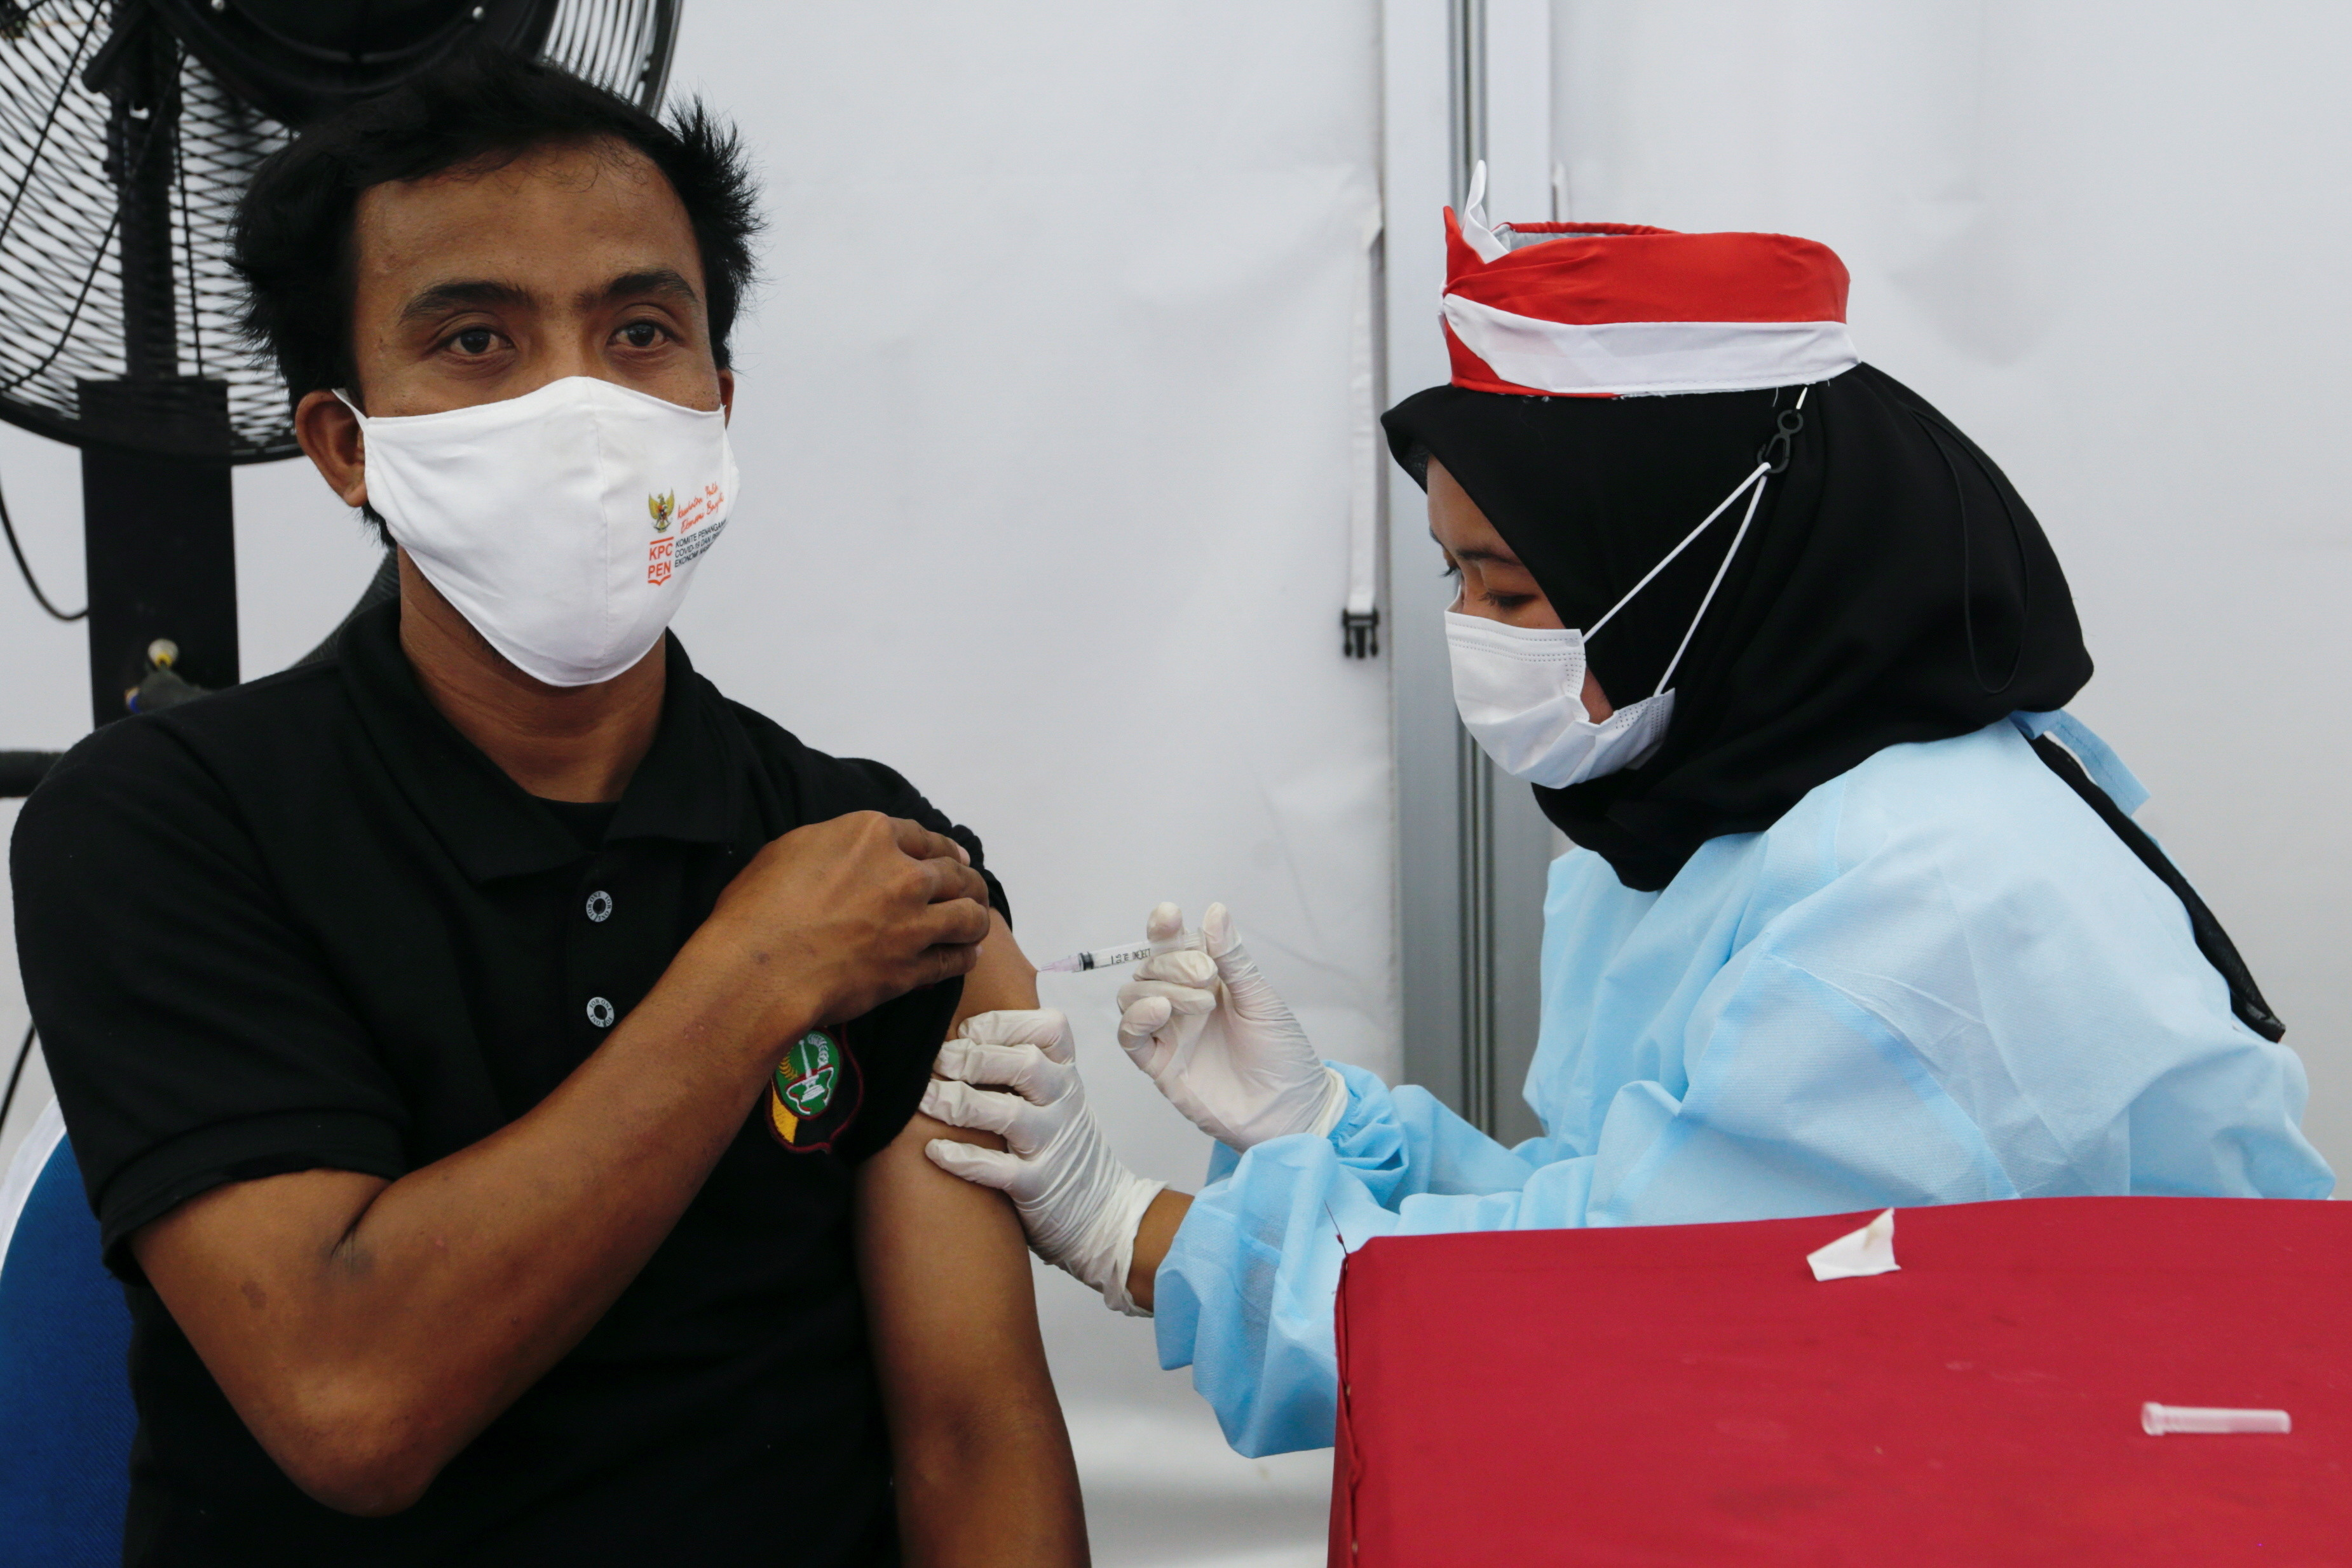 A man receives a dose of a vaccine against the coronavirus disease (COVID-19) during a vaccination program in Jakarta, Indonesia, August 16, 2021.